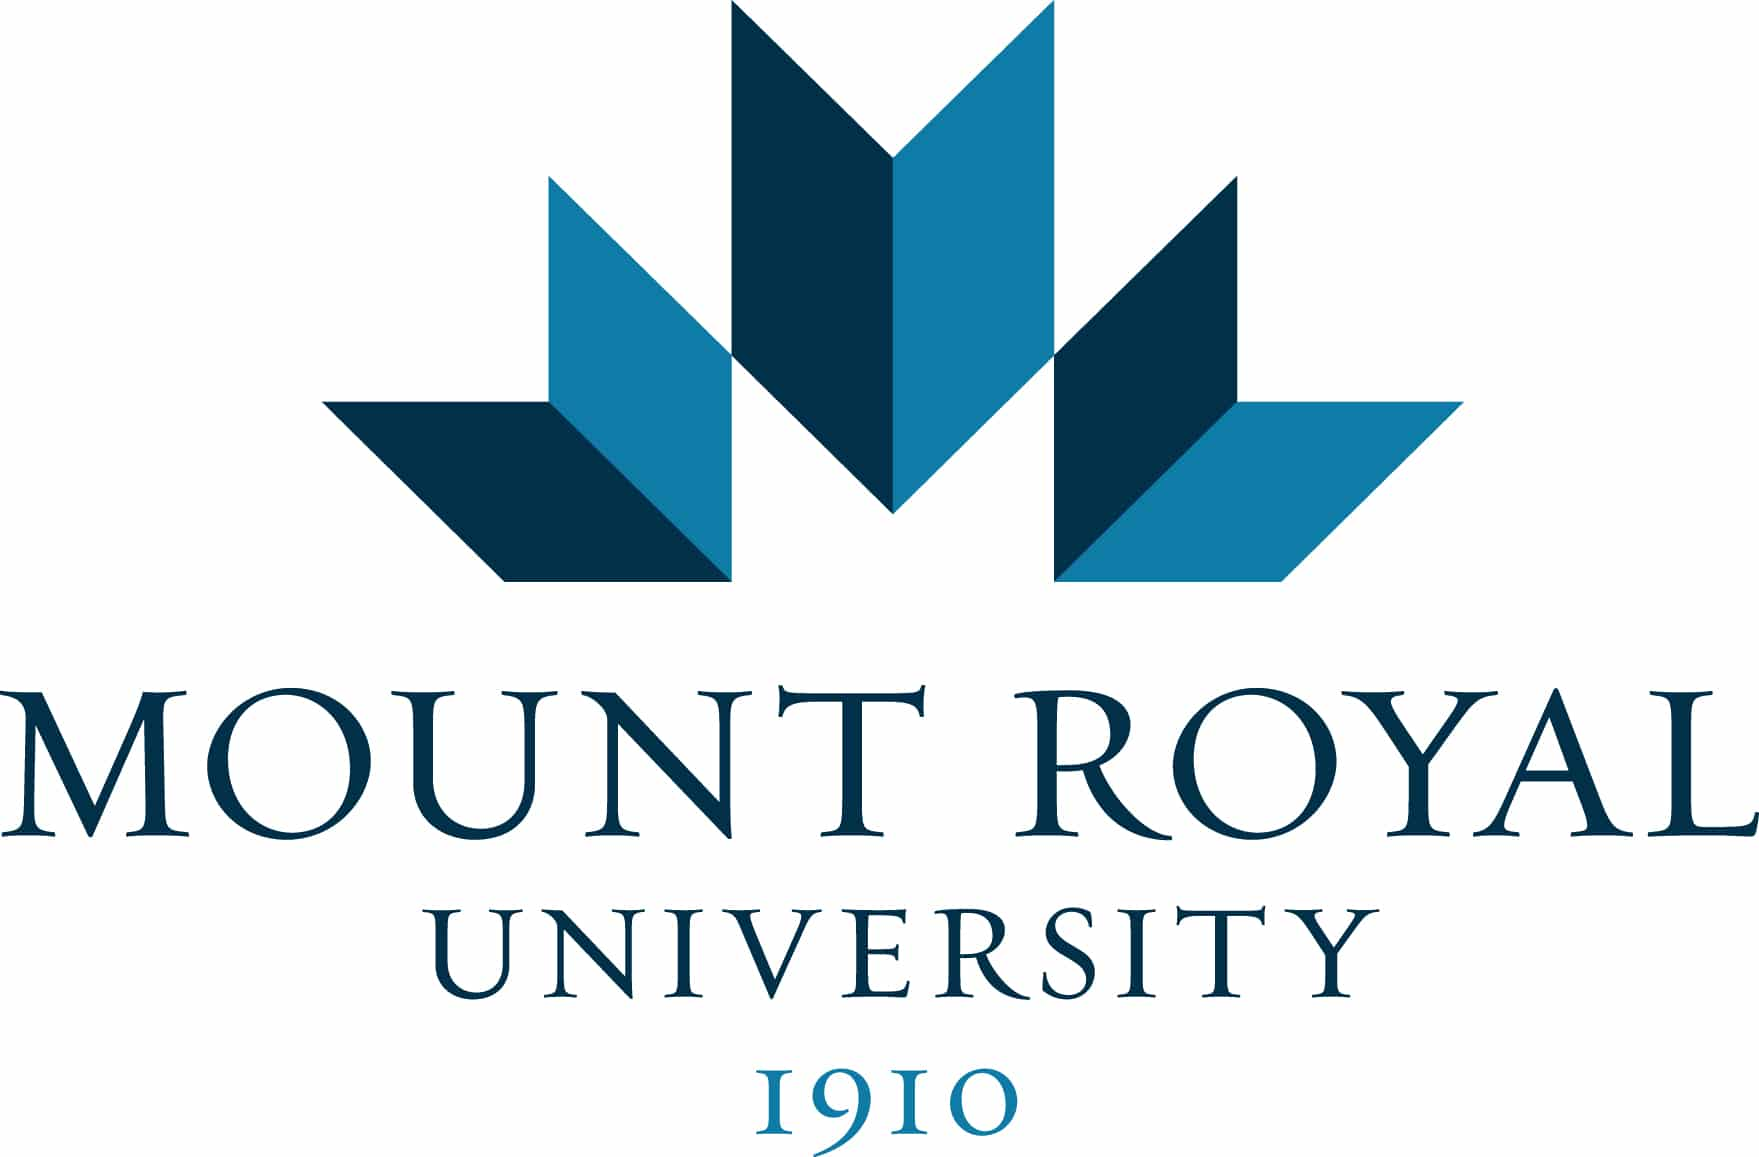 Mt. Royal University